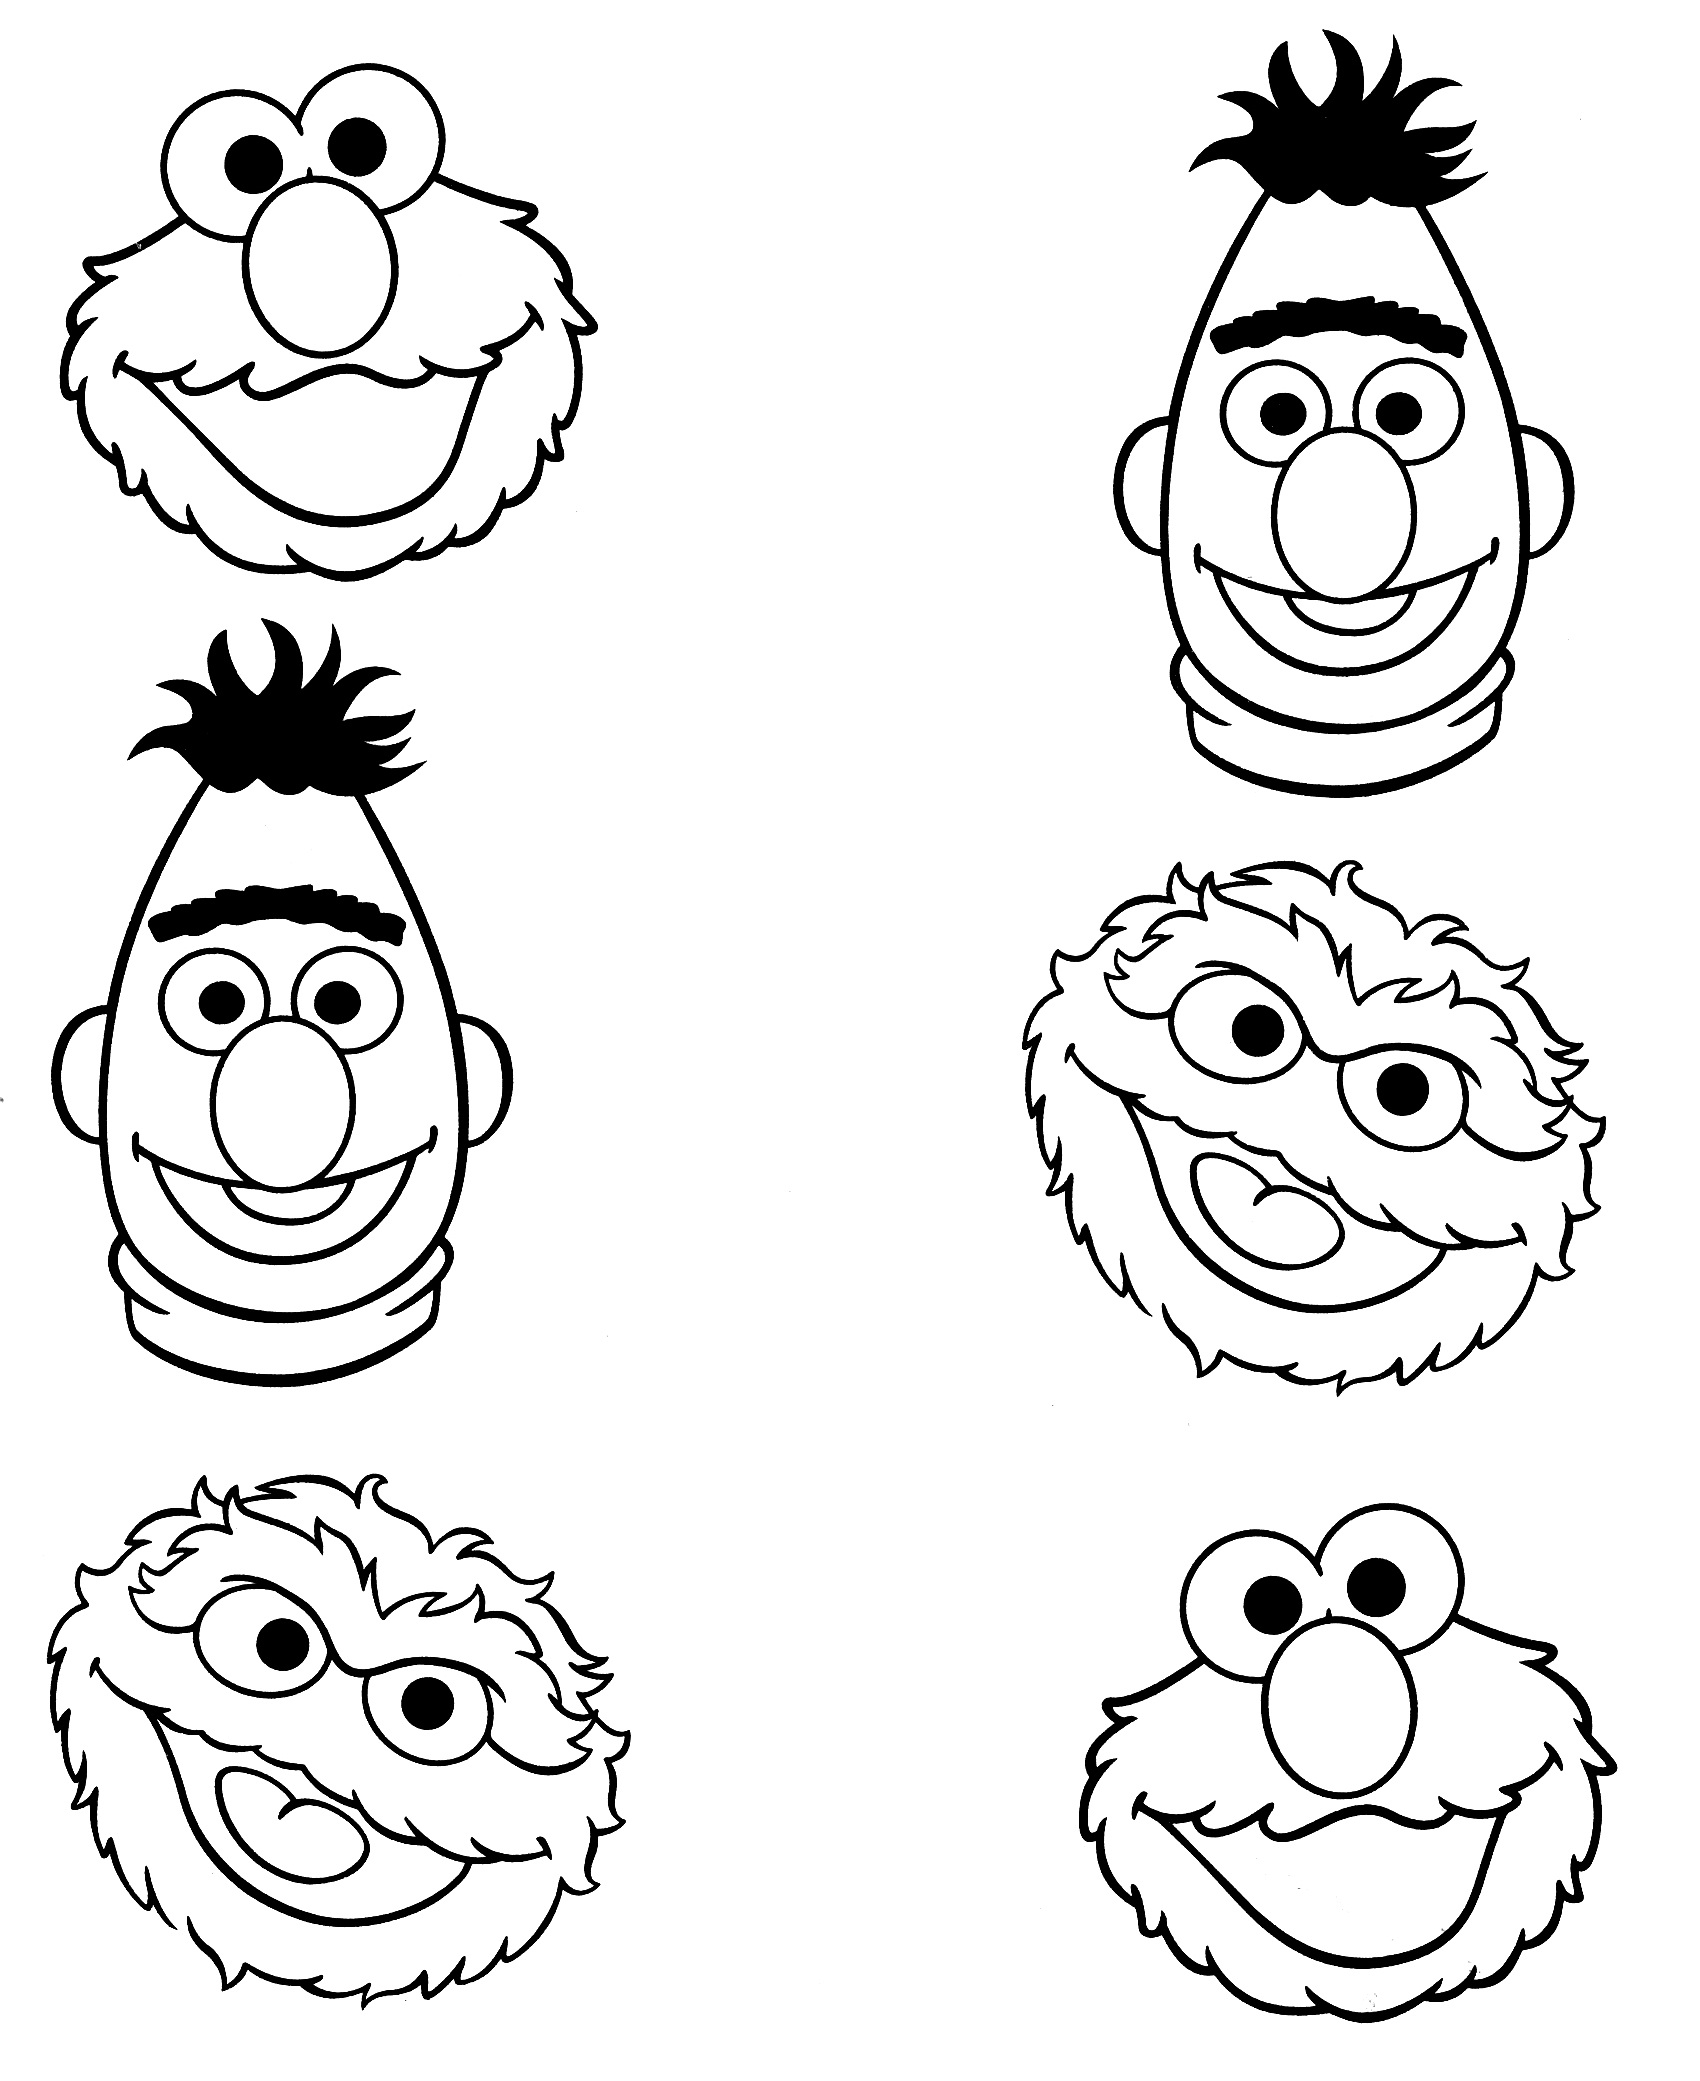 graphic relating to Printable Pictures of Sesame Street Characters identify Sesame Highway Coloring Web pages Grover. telly monster and